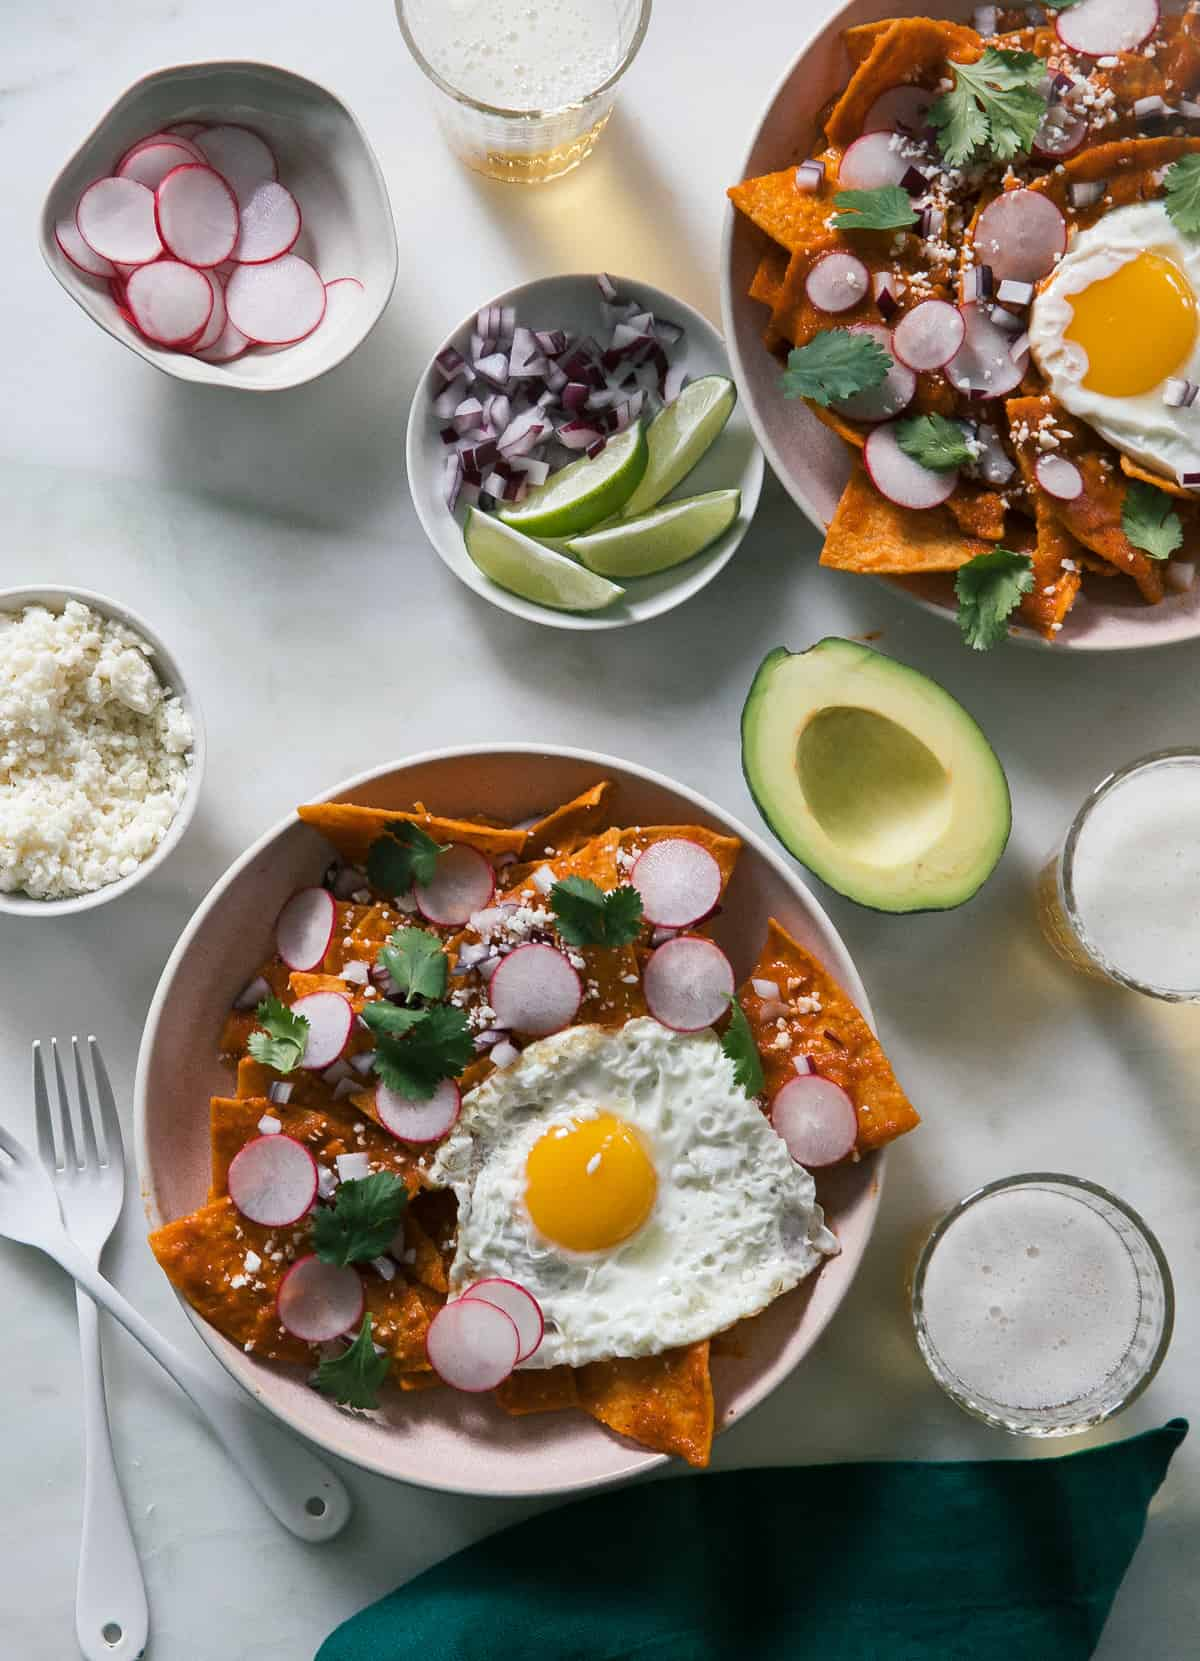 Two found blate of Chilaquiles with radishes, limes and avocado